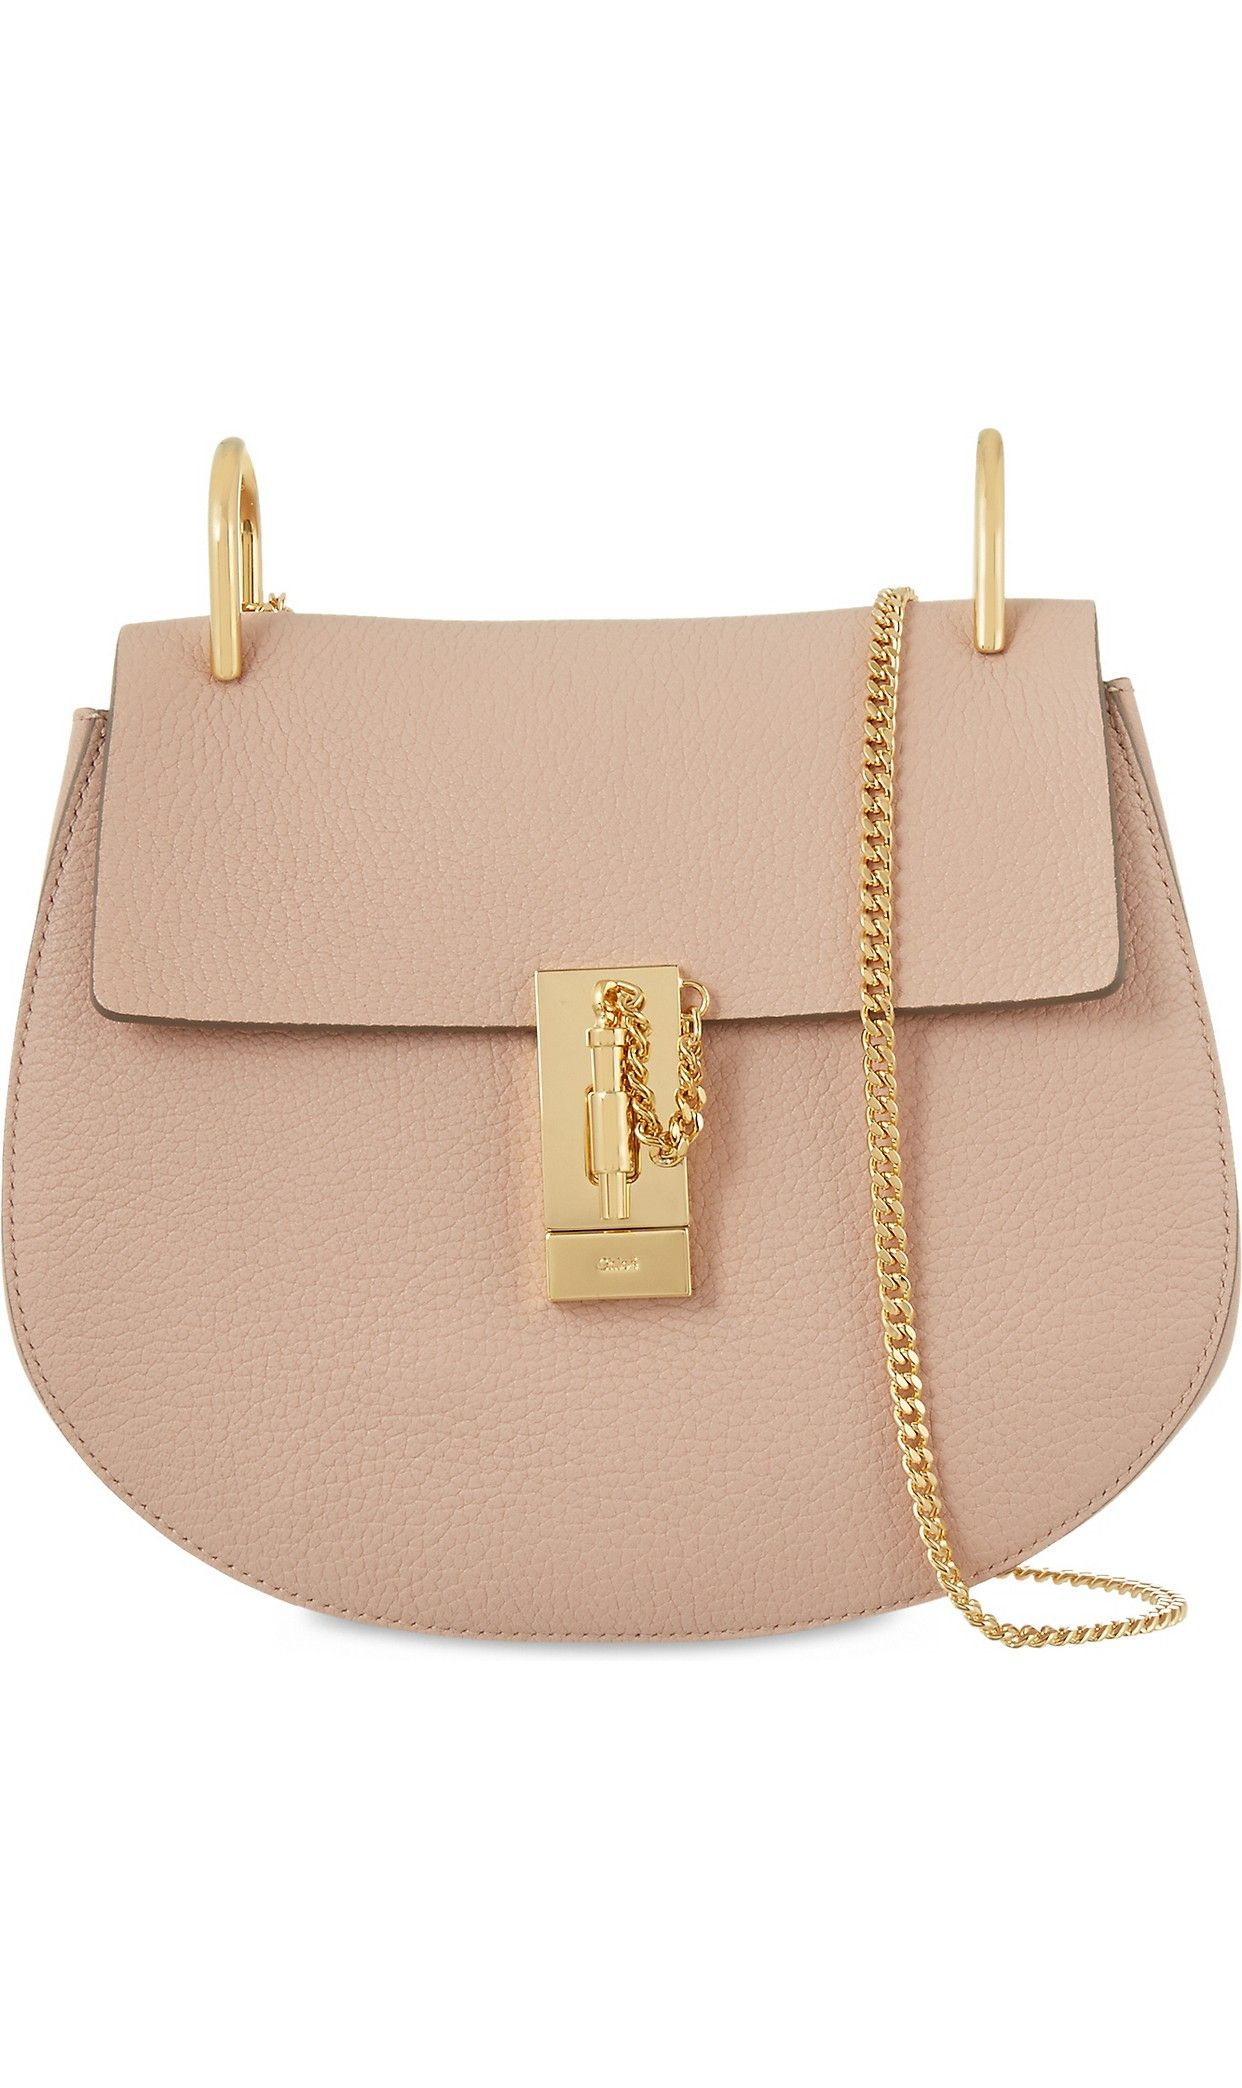 9f9eccd910aba CHLOE Drew small leather cross-body bag | Gift ideas for Her this ...